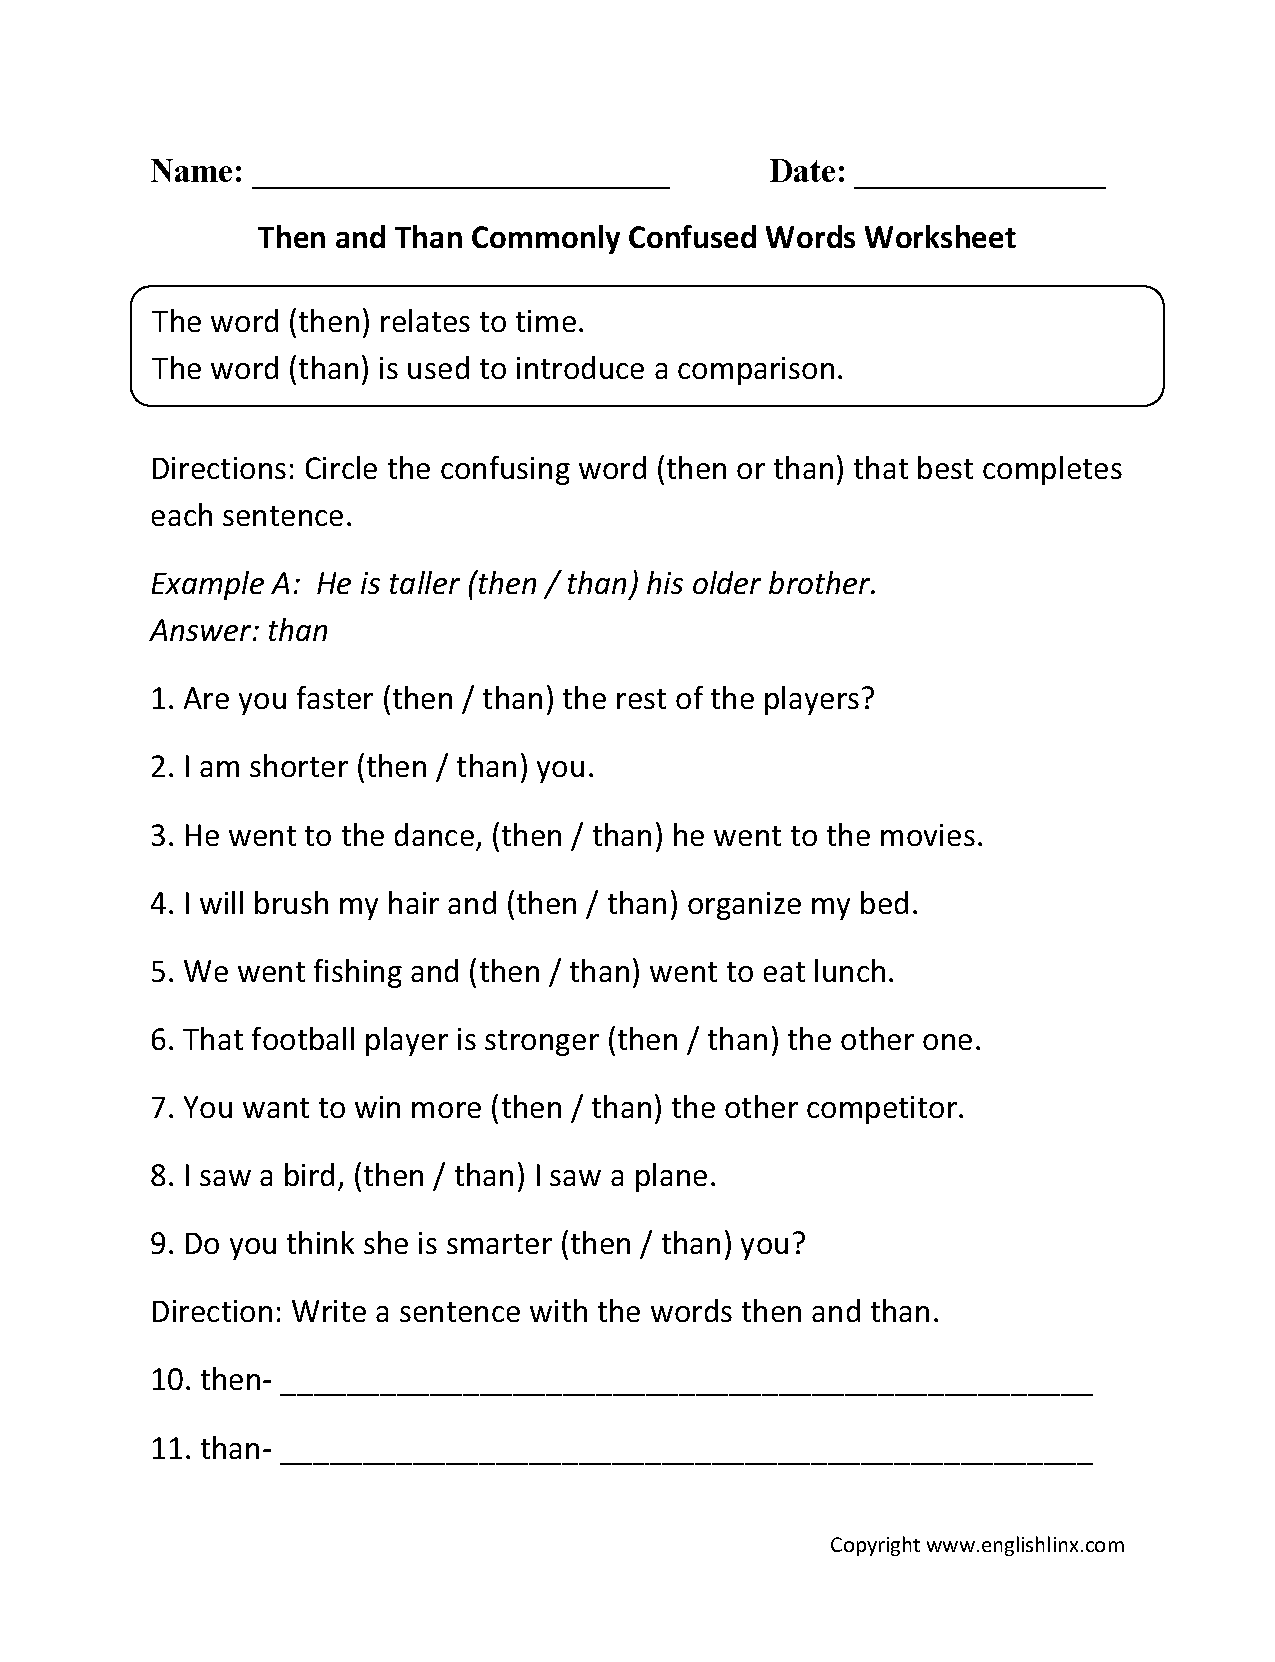 Uncategorized Then Than Worksheet commonly confused words worksheets then vs than worksheets